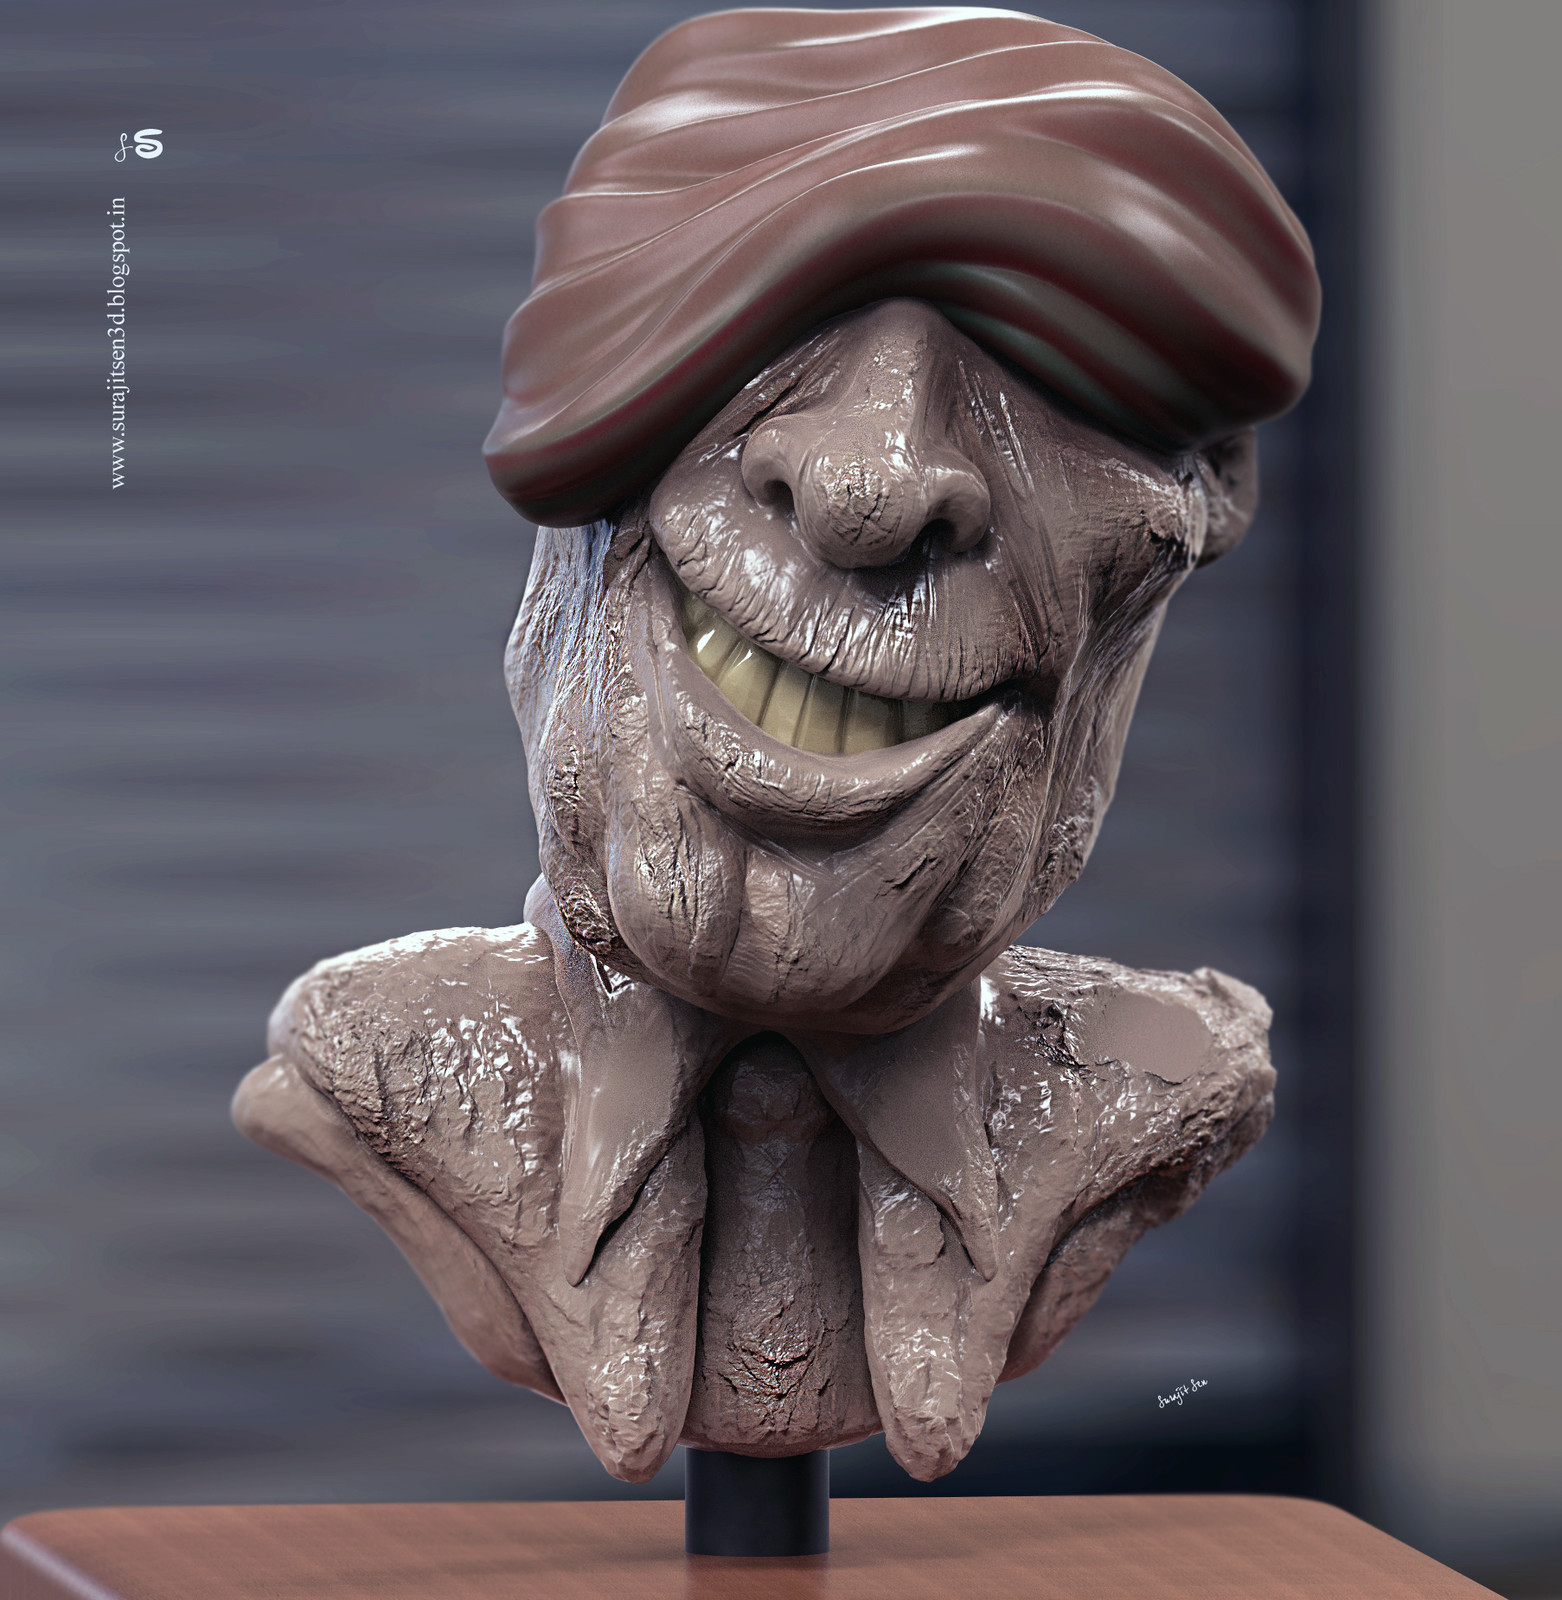 Wish to share my speed Digital sculpt study. .. Fun with brushes!